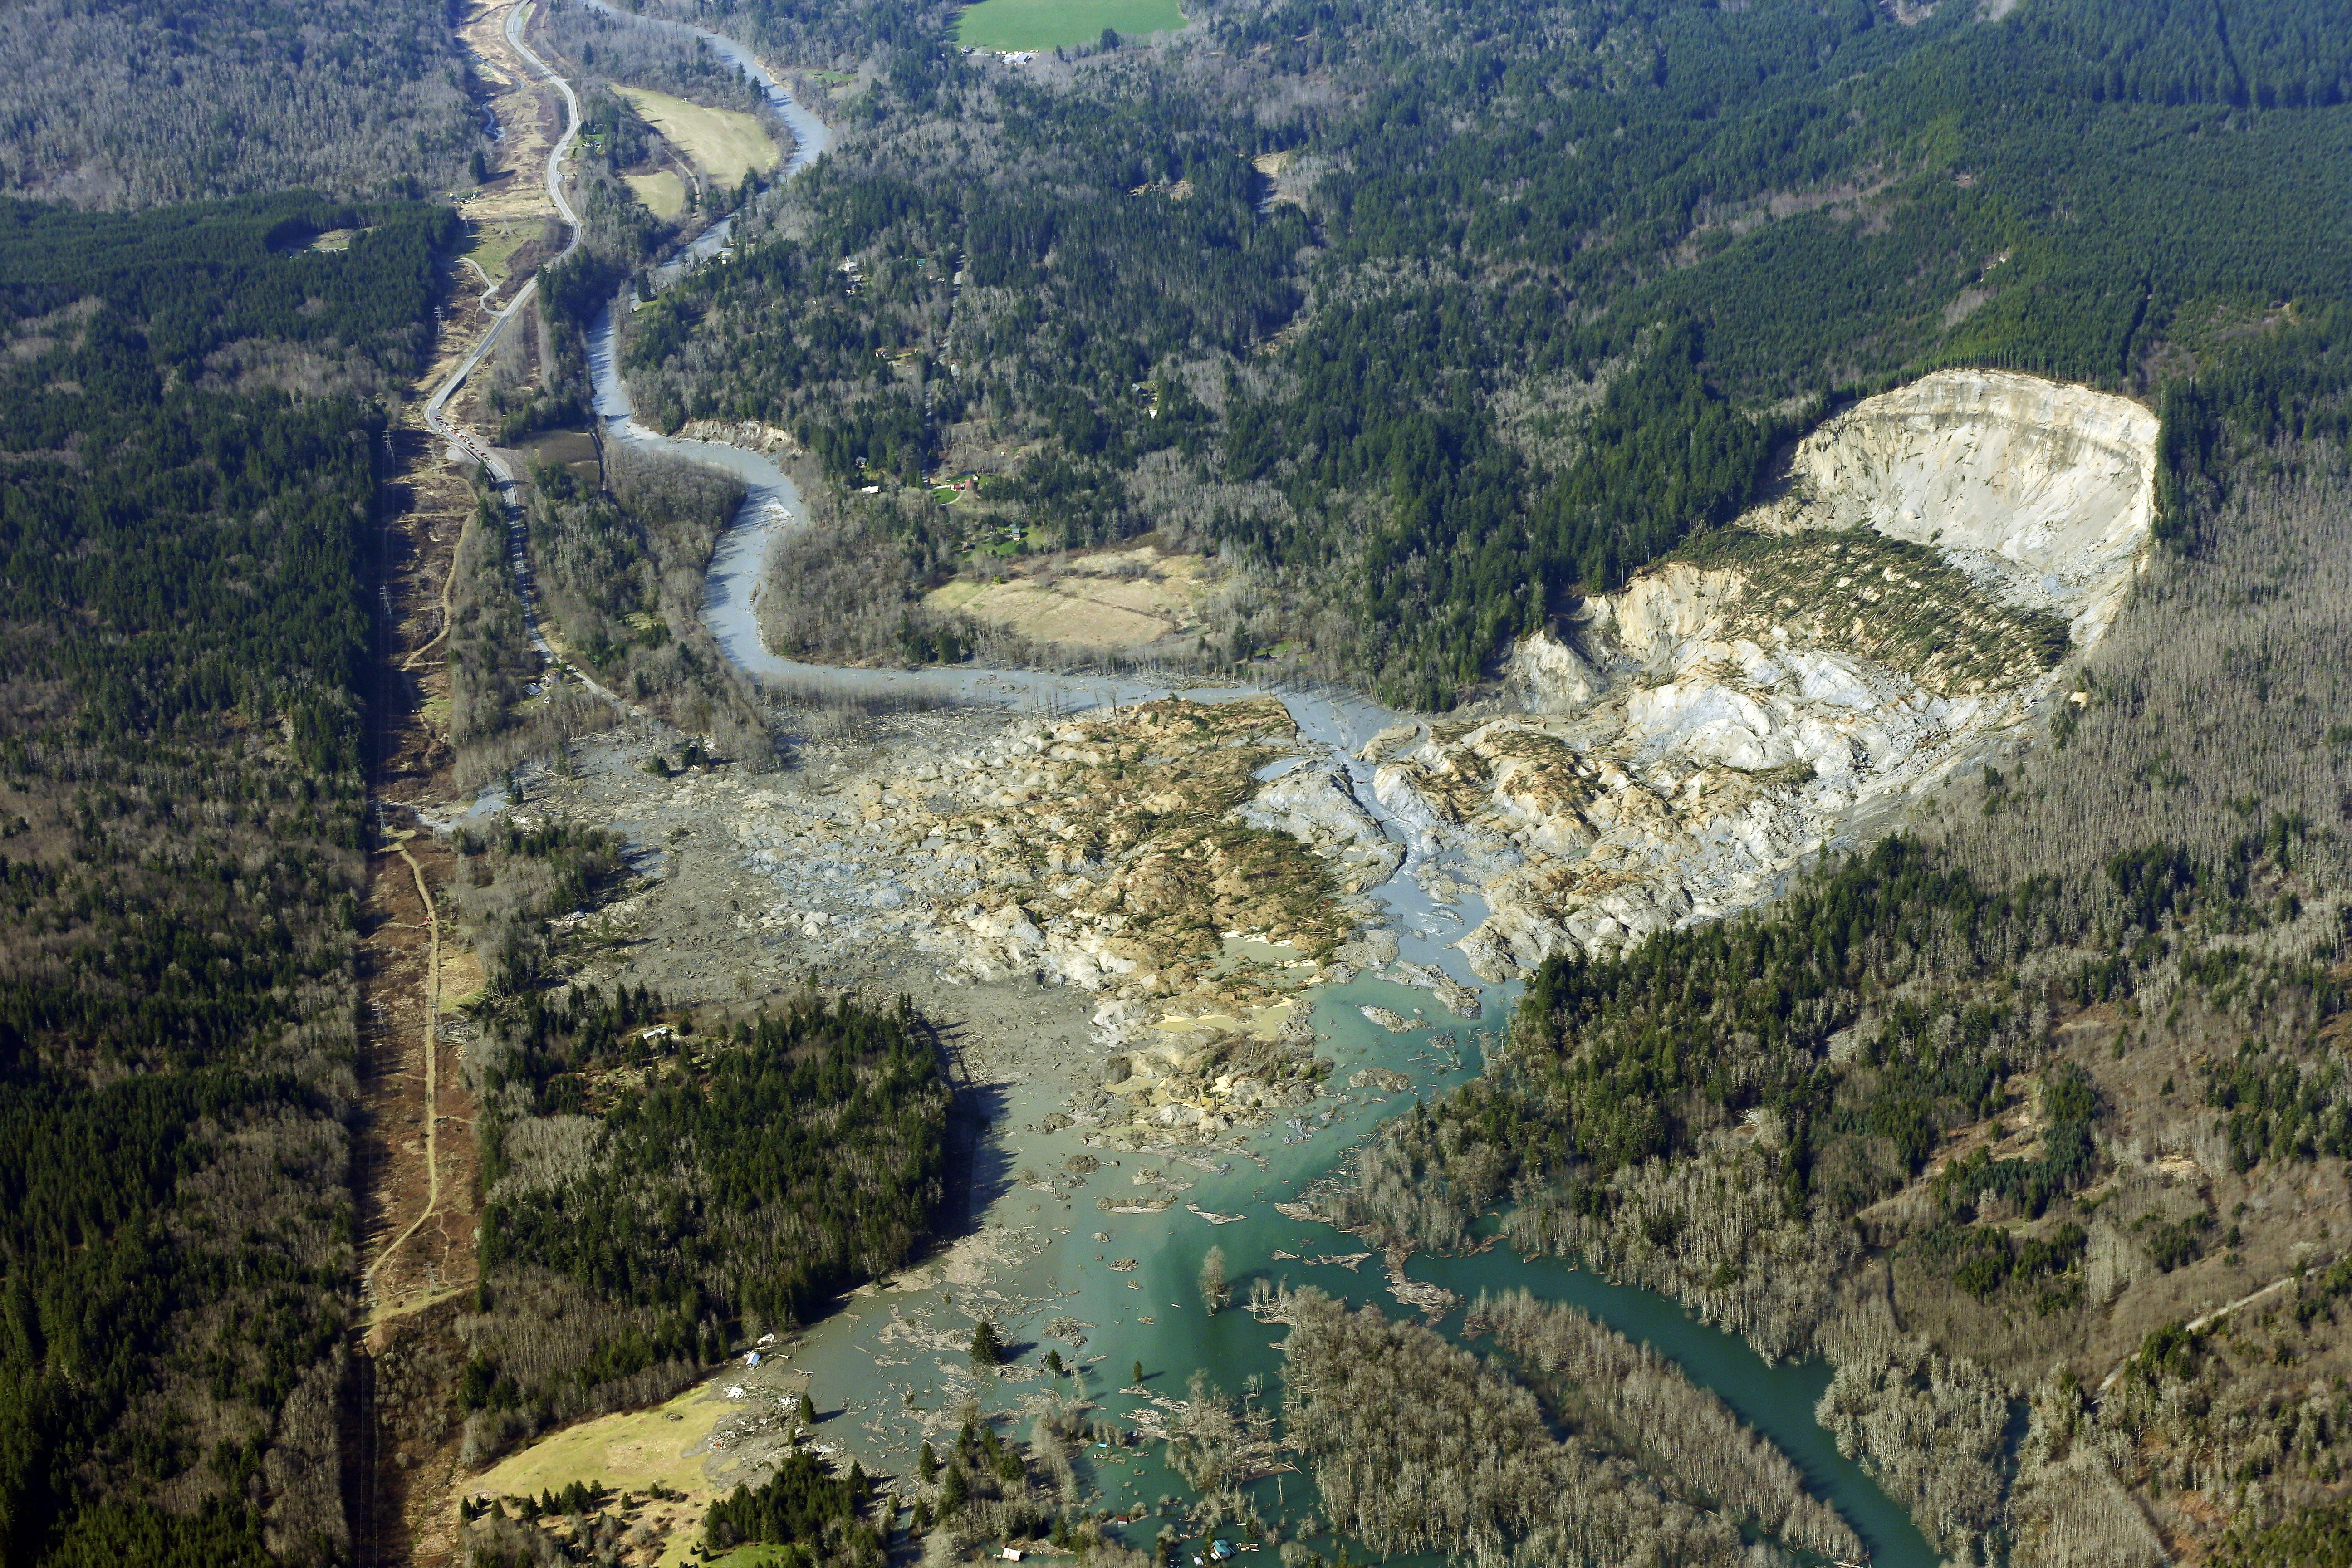 Oso, Washington mudslide aerial photo